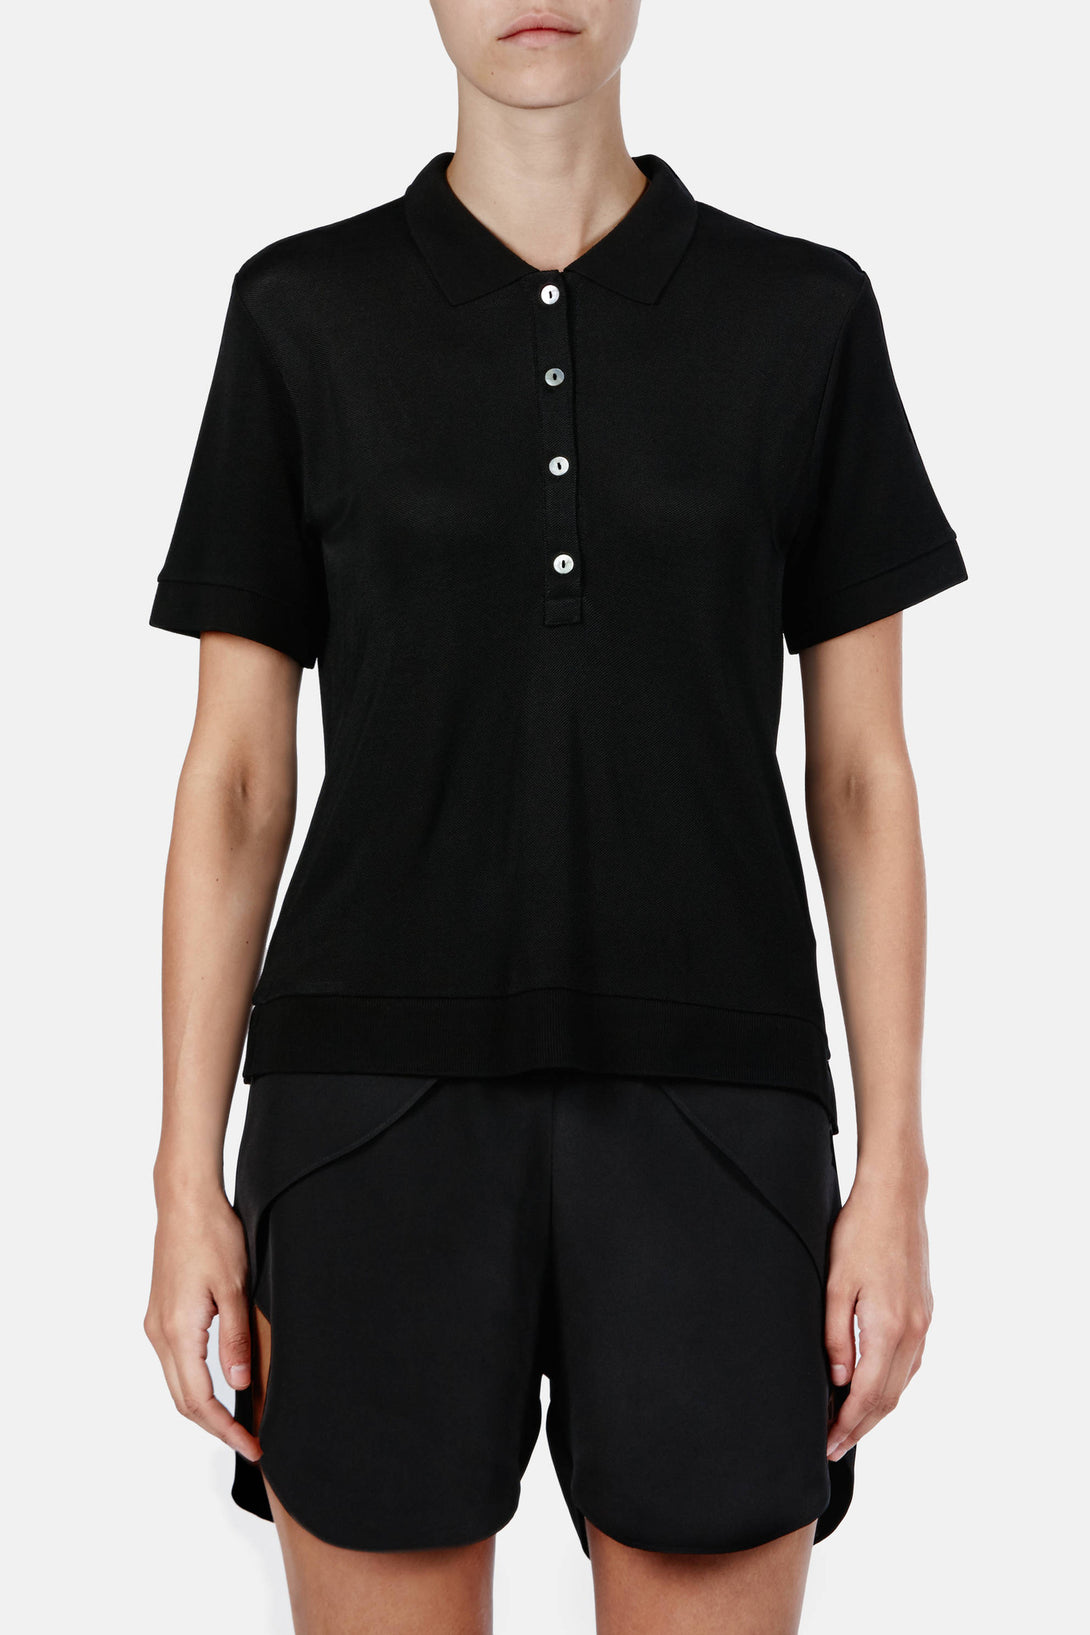 Kensington Pique Polo - Black